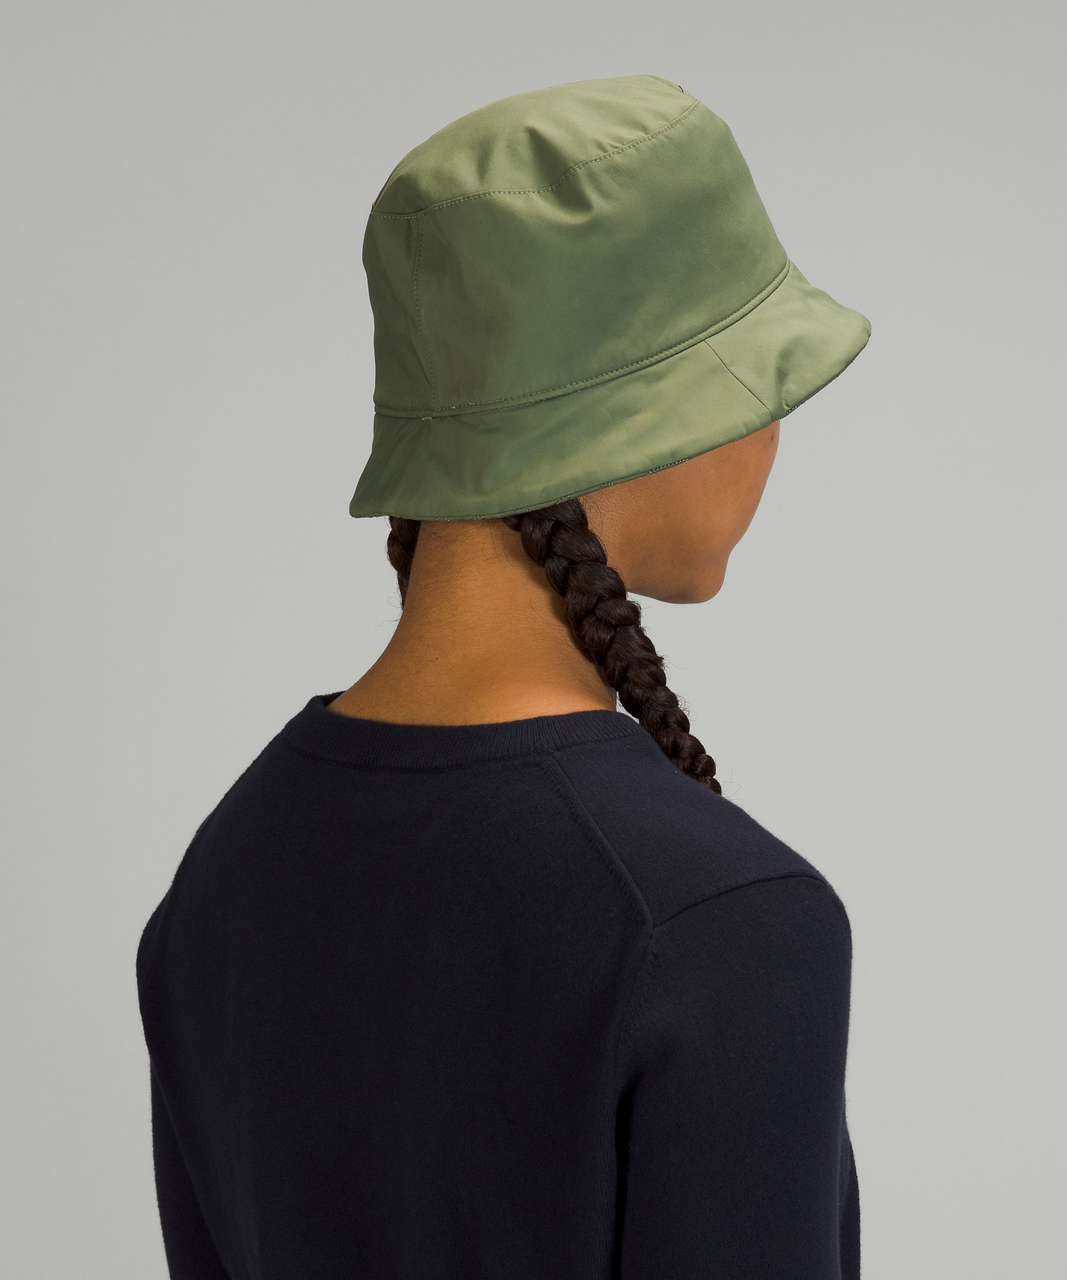 Lululemon Reversible Quilted Bucket Hat - Green Twill